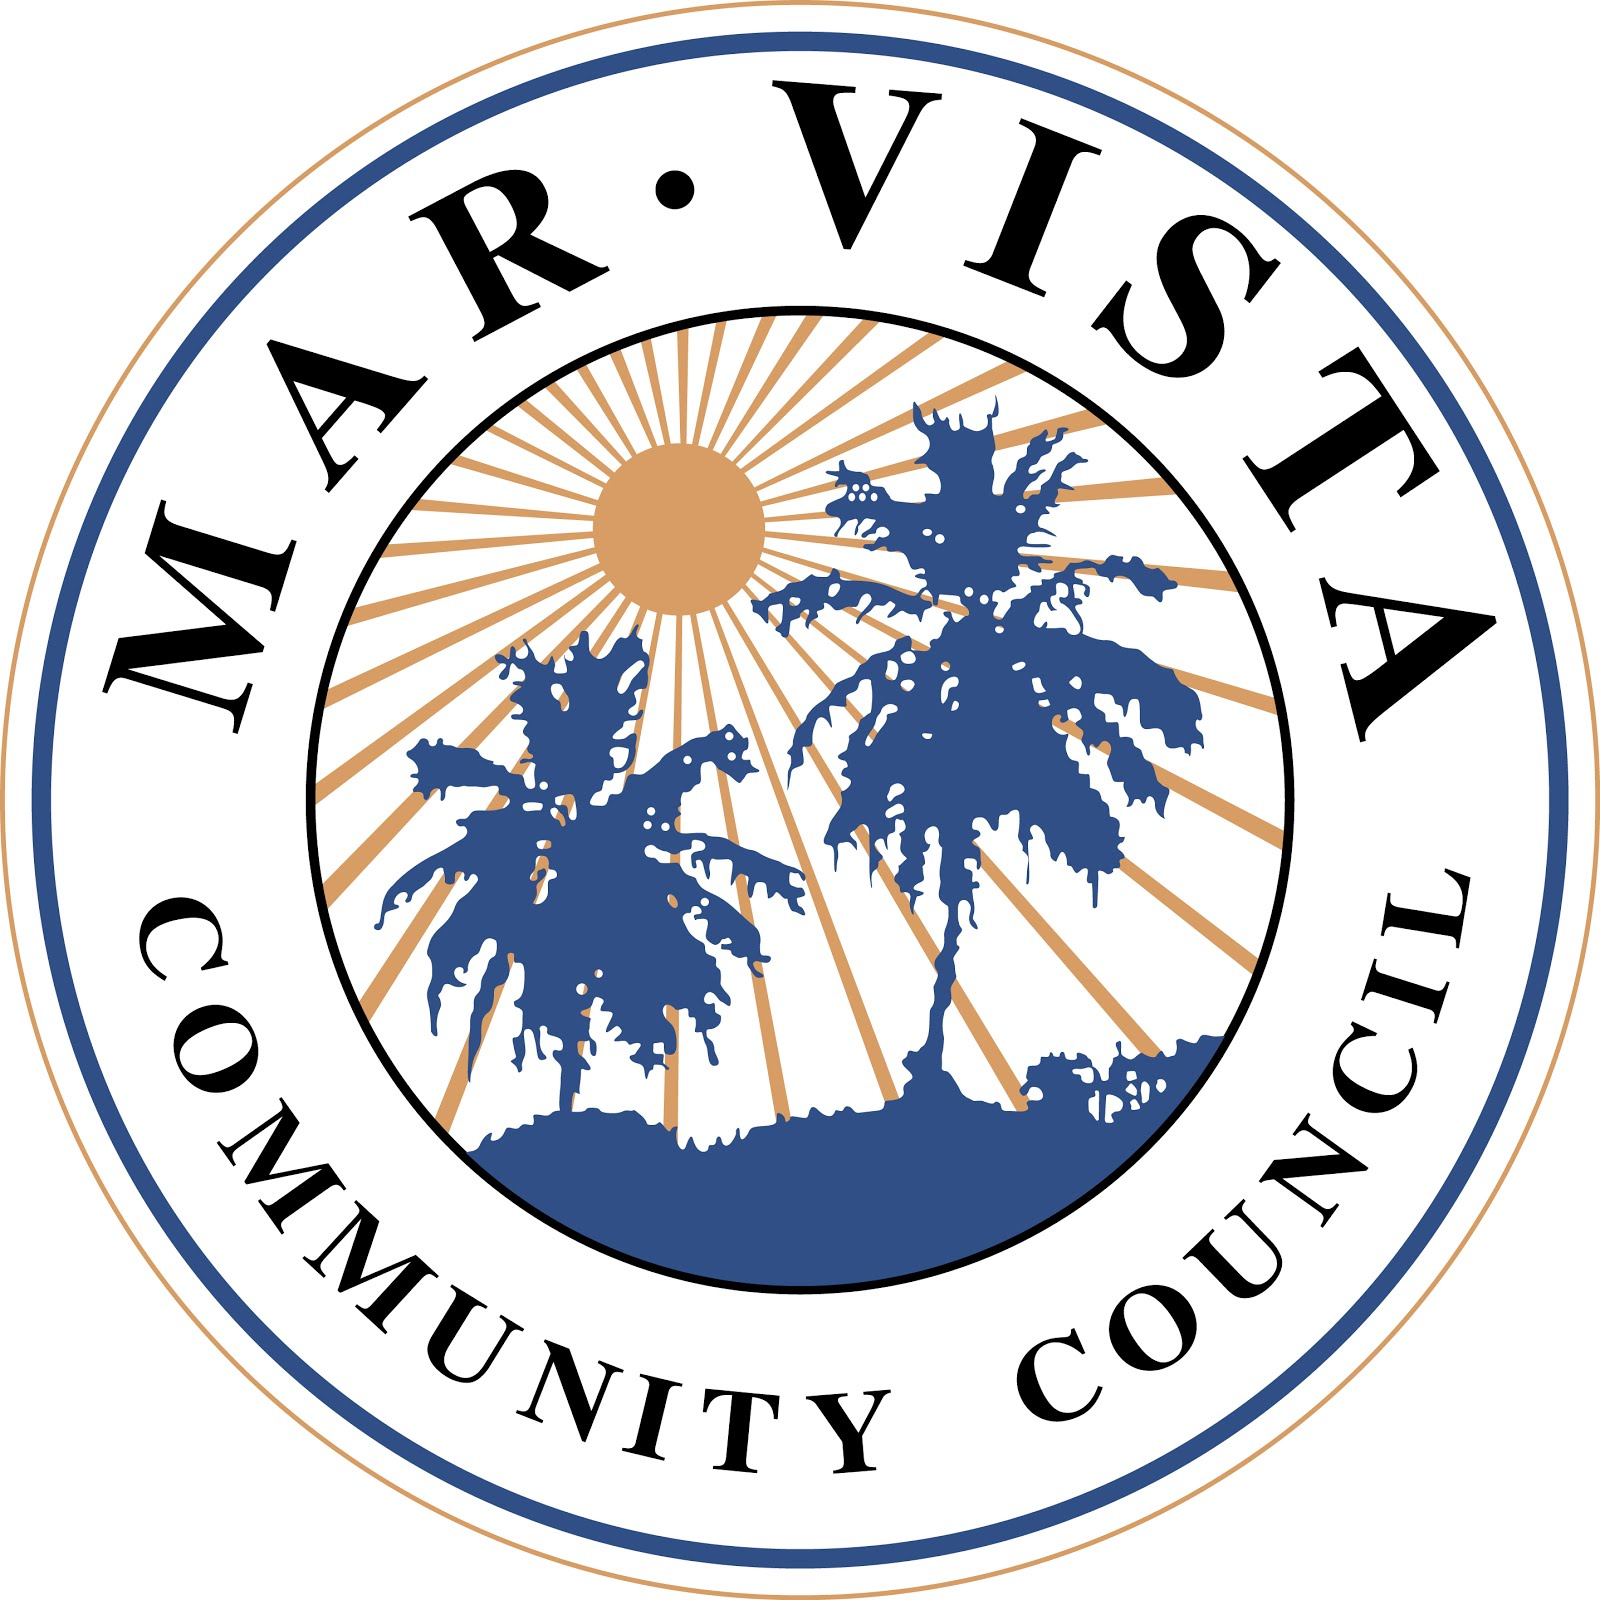 Mar Vista Community Council